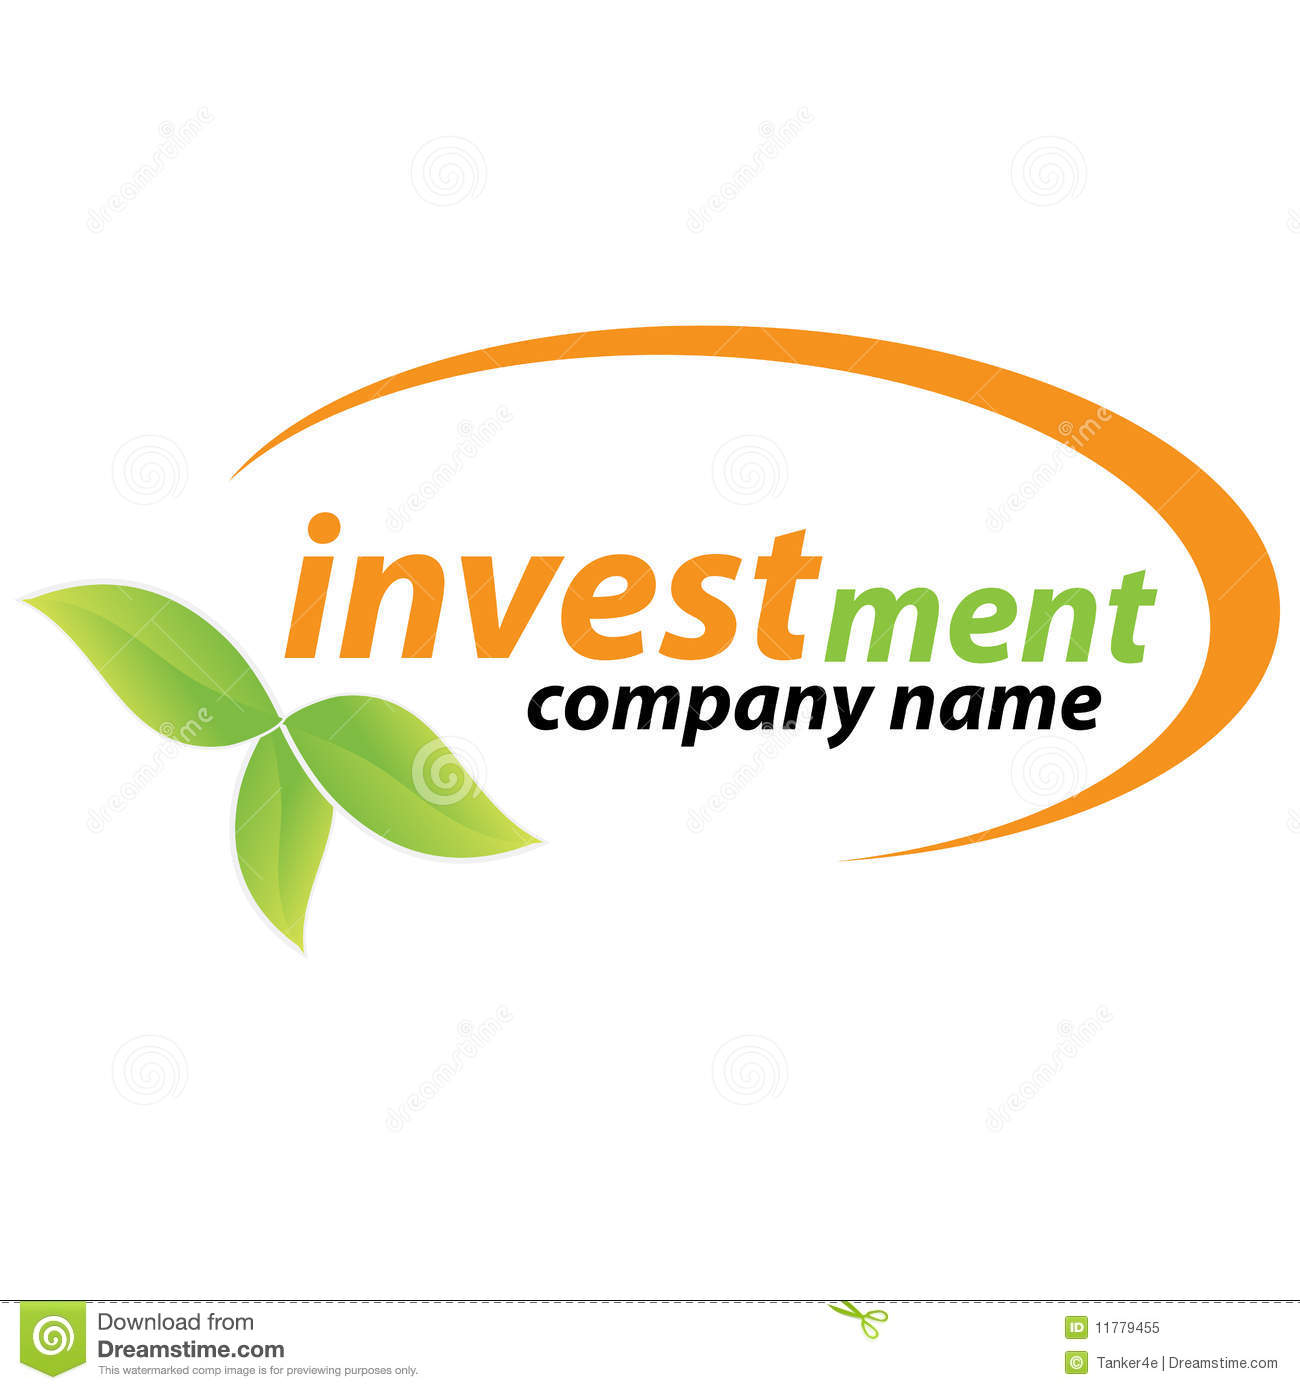 Investment company pictures 1 2 3 indicator forex indonesia